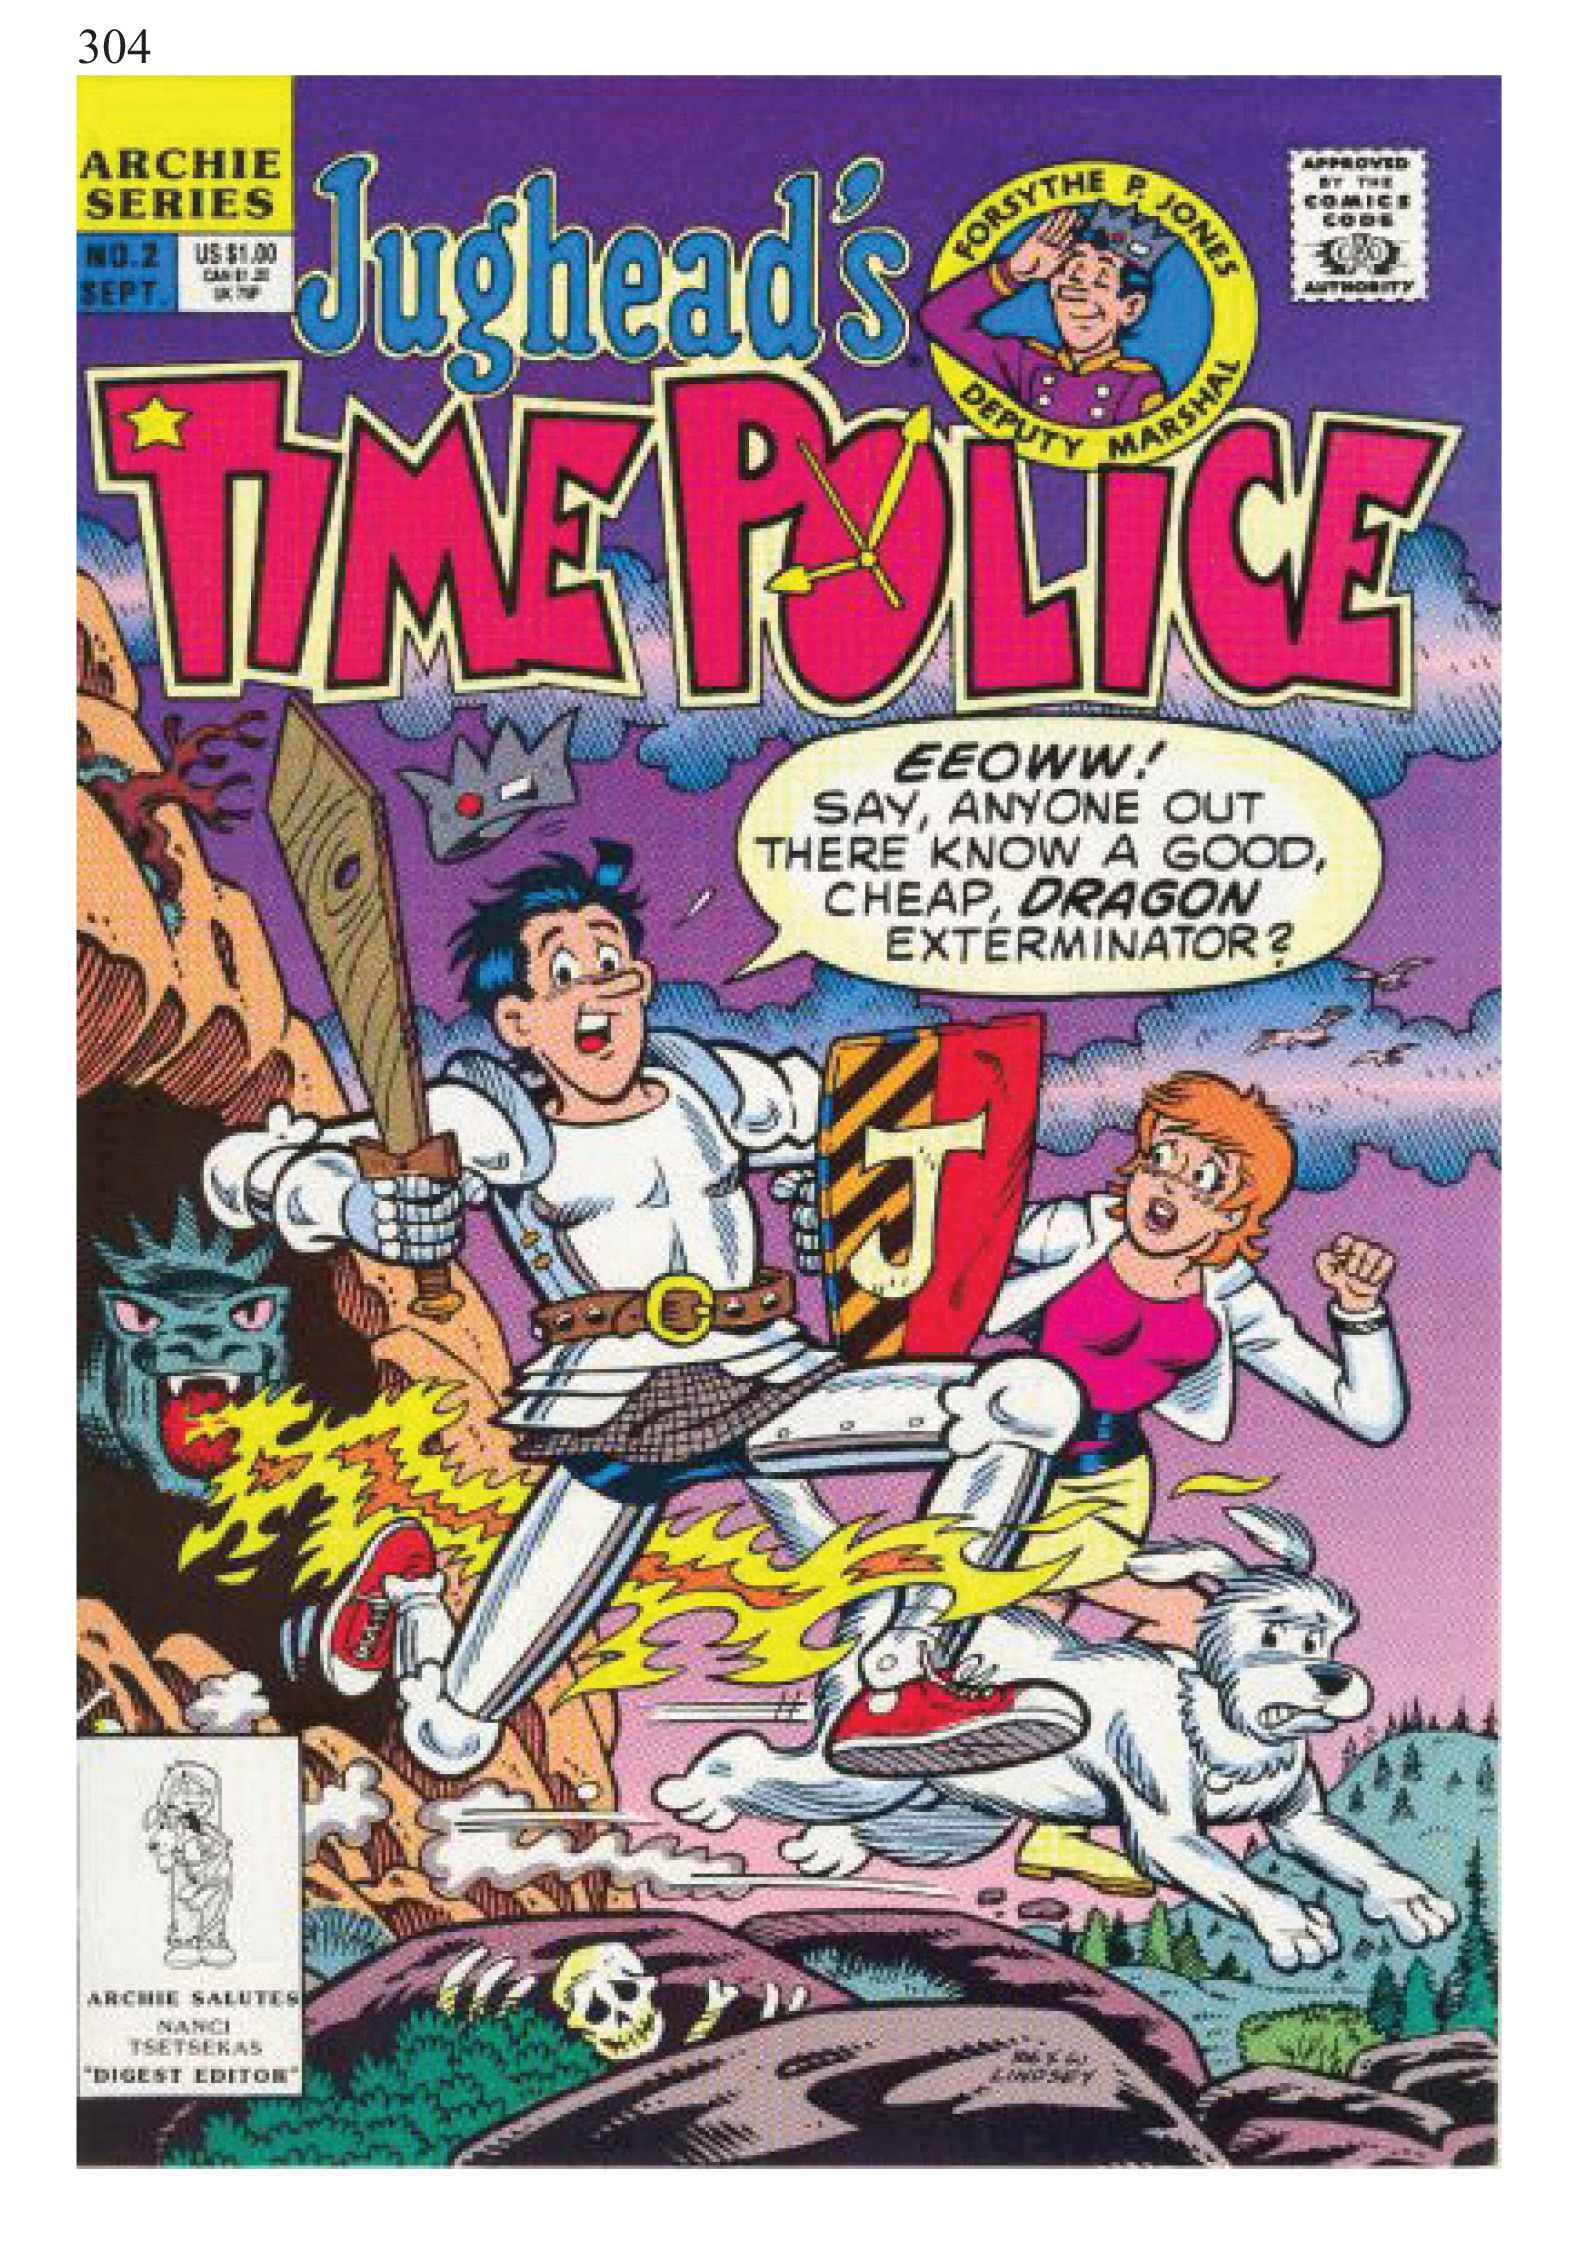 Read online The Best of Archie Comics comic -  Issue # TPB 1 (Part 2) - 75